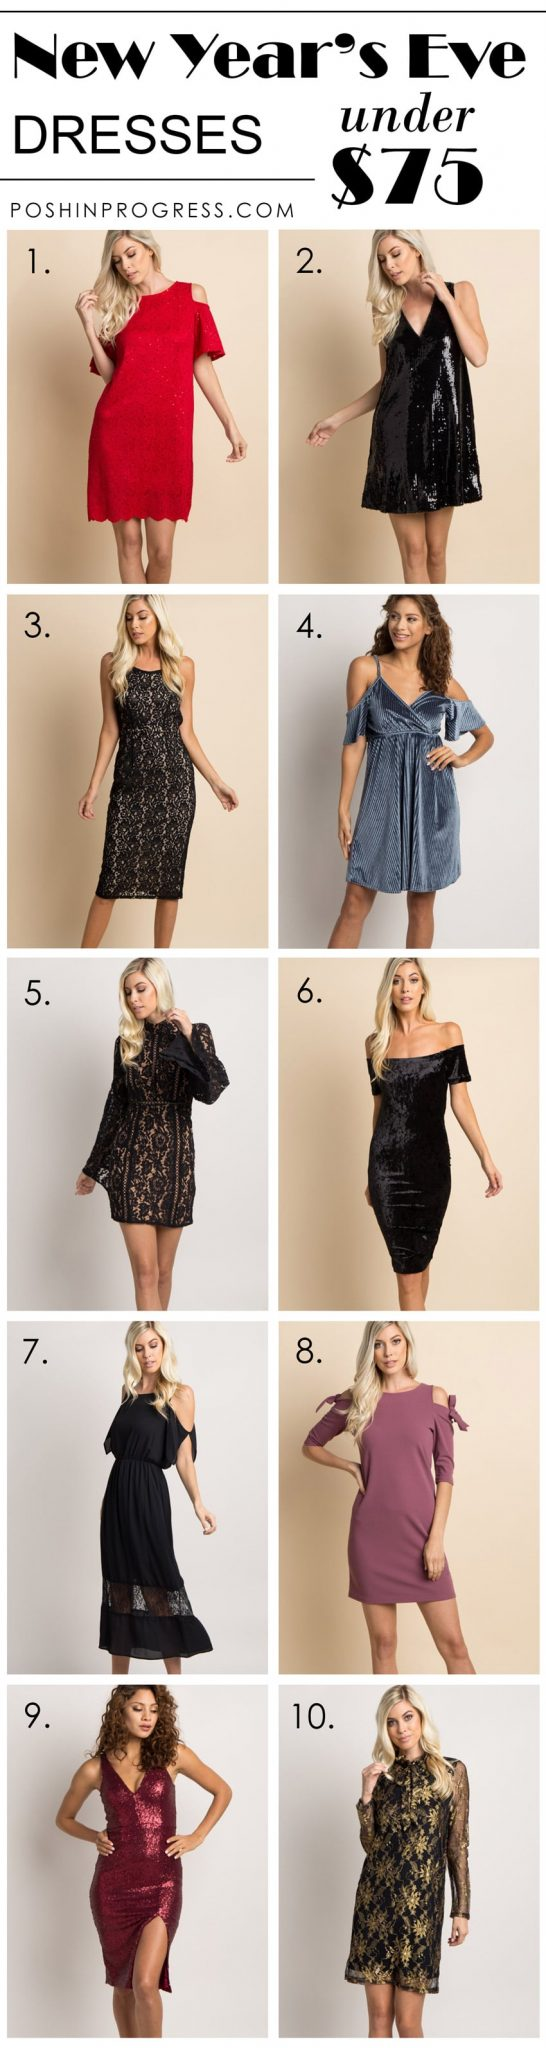 10 Cute and Affordable New Year's Eve Dresses Under $75